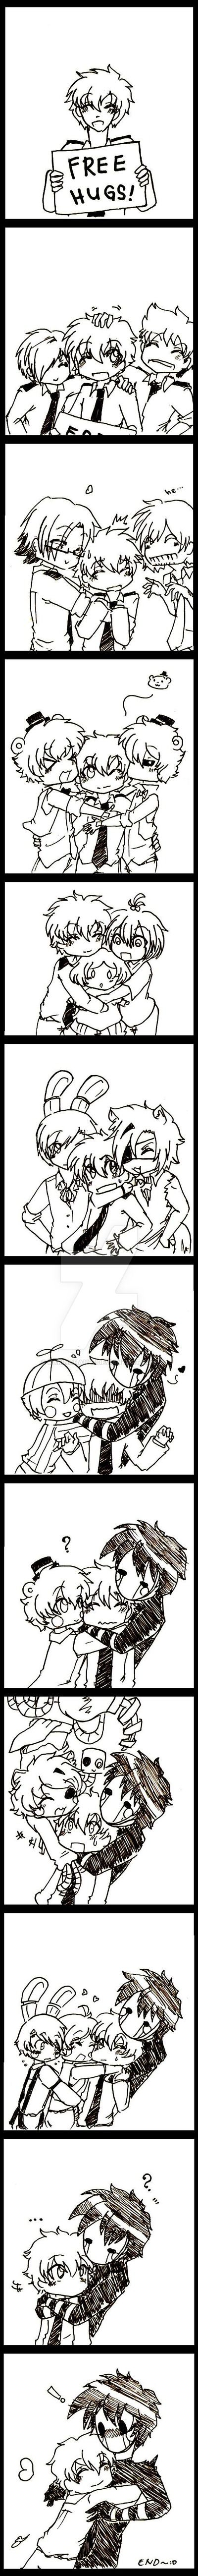 fnaf-free hugs with Jeremy!! by karinchan97-the end is cute with Jeremy and the marionette,I ship them.